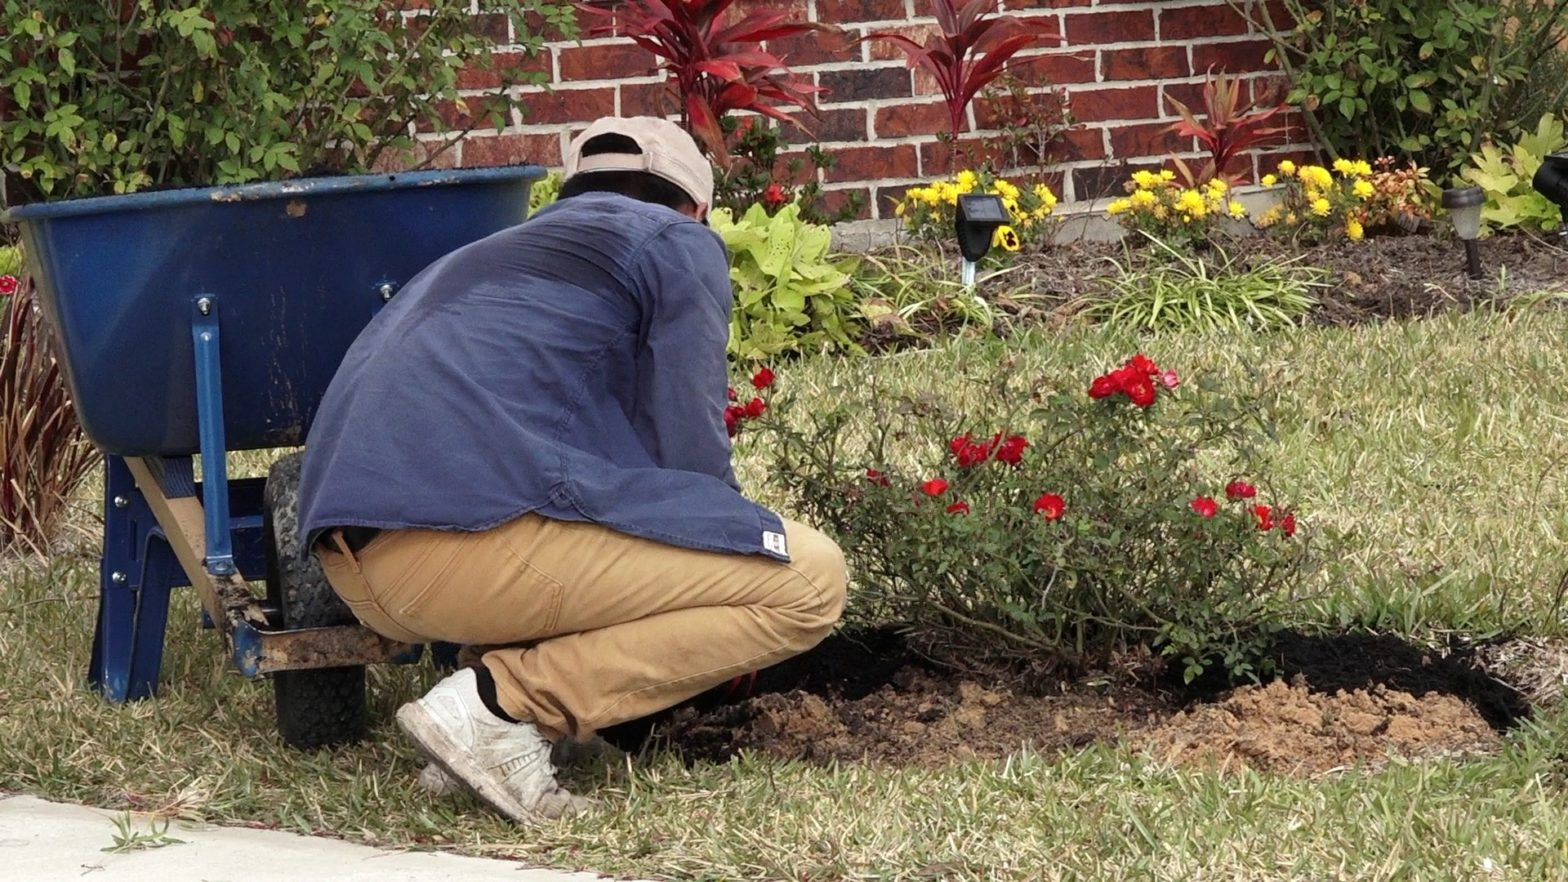 HOA sues elderly couple over flower beds, seeking up to $100,000 in damages